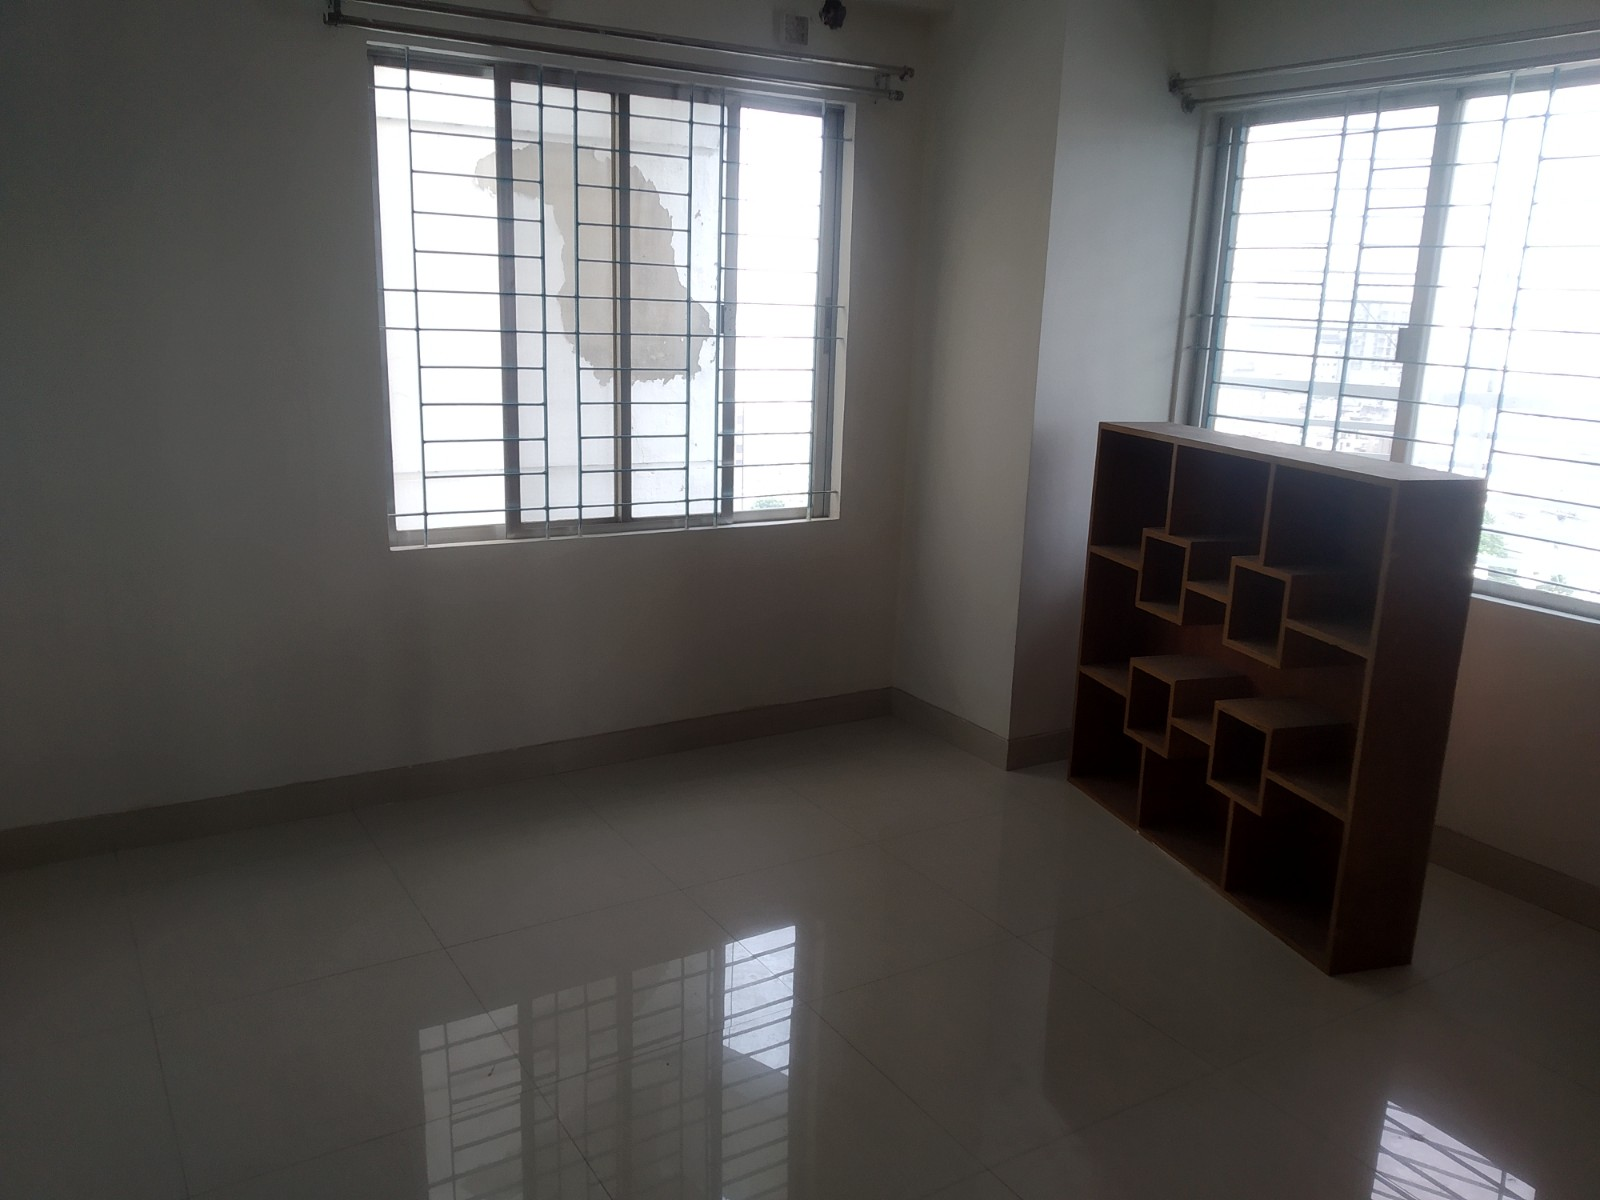 2810-sft-apartment-for-sale-at-dhanmondi-14th-floor-394800